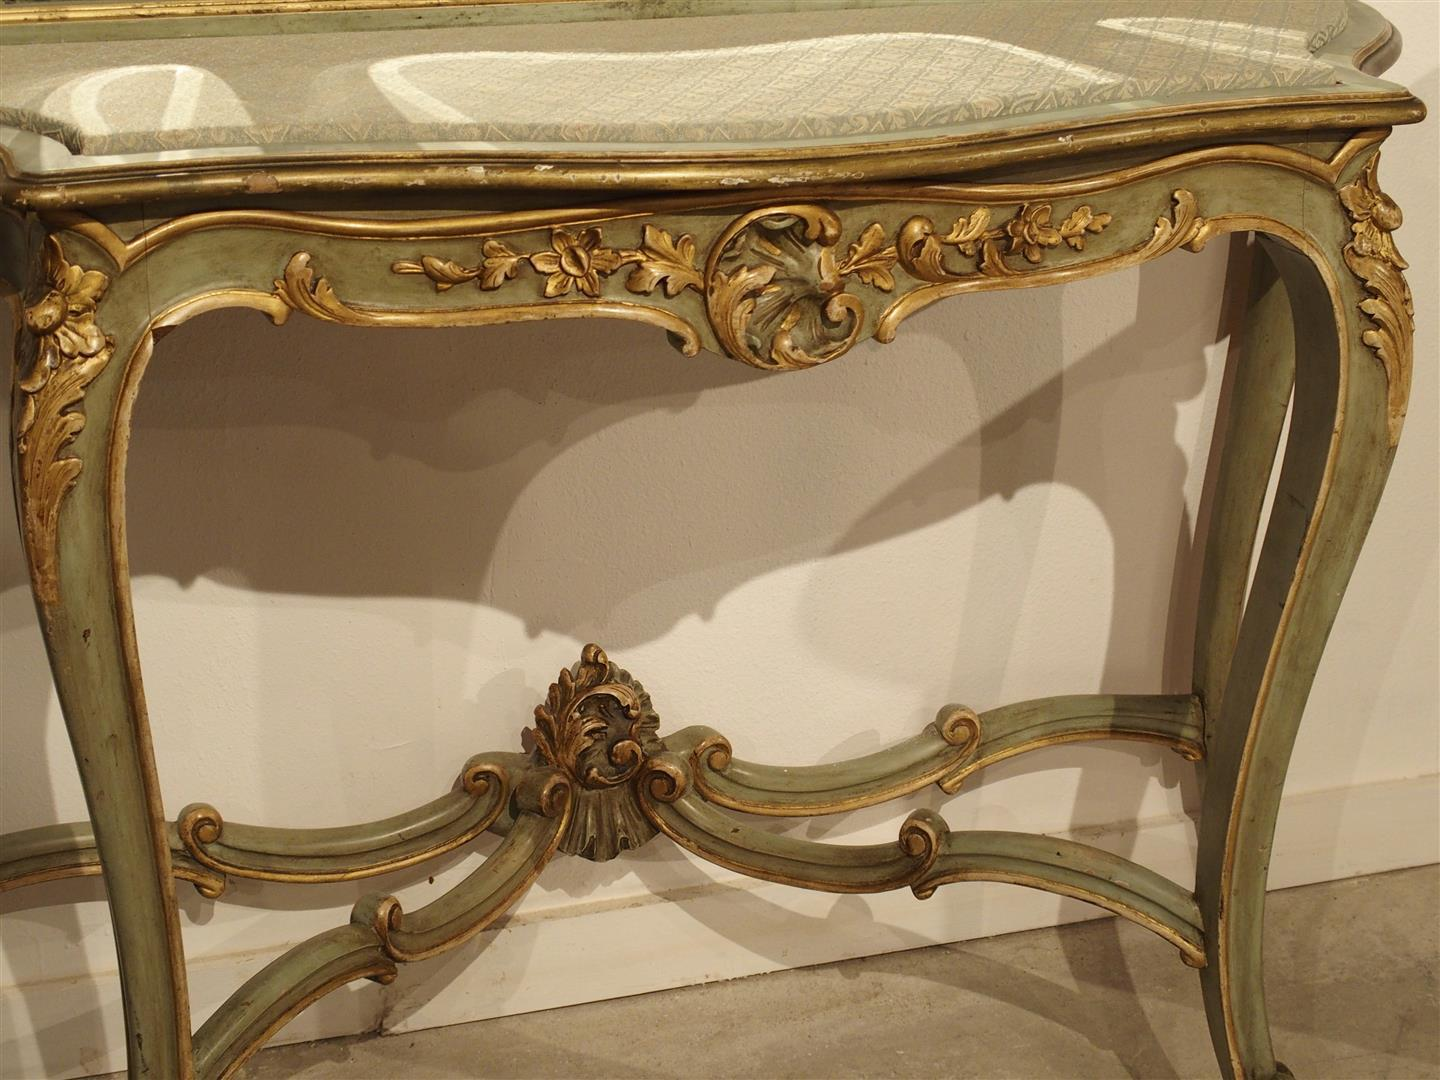 Sophisticated Antique Painted Console Table and Mirror from Italy